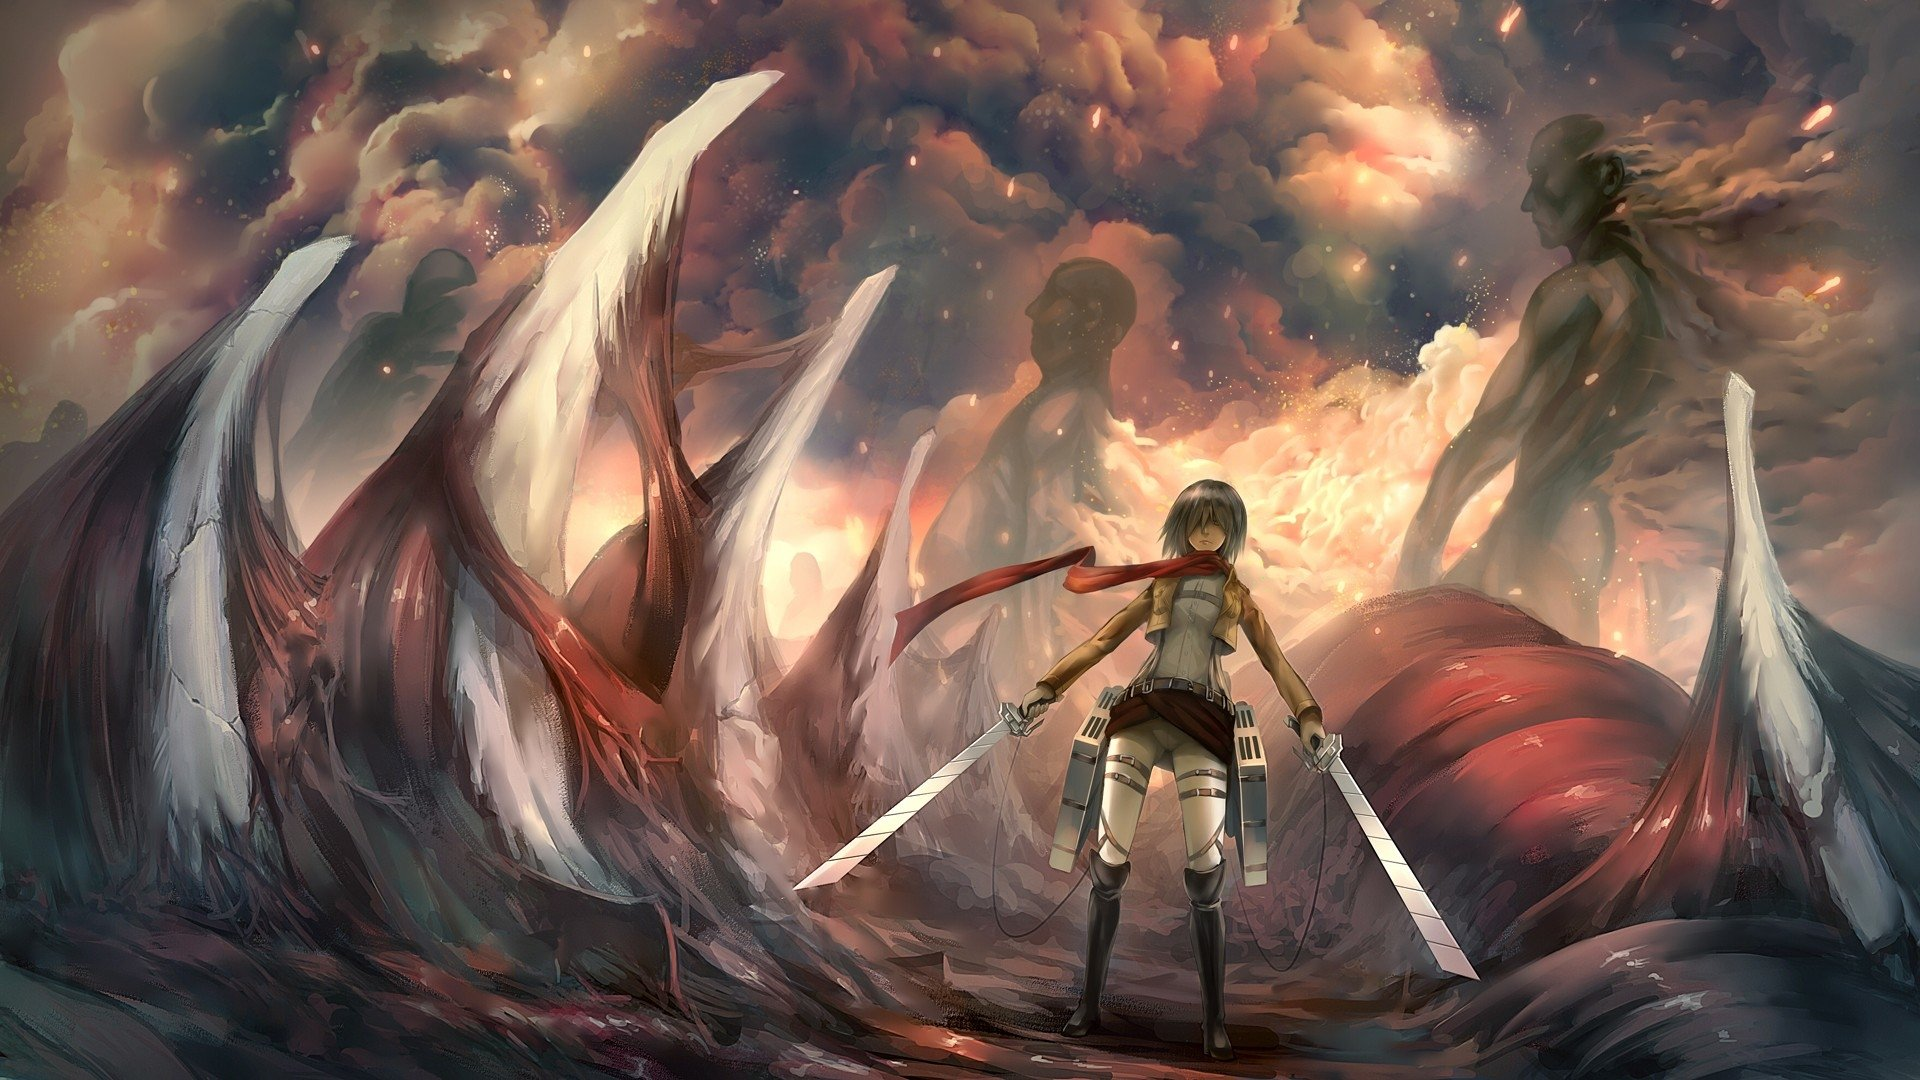 757 Mikasa Ackerman HD Wallpapers Background Images   Wallpaper 1920x1080